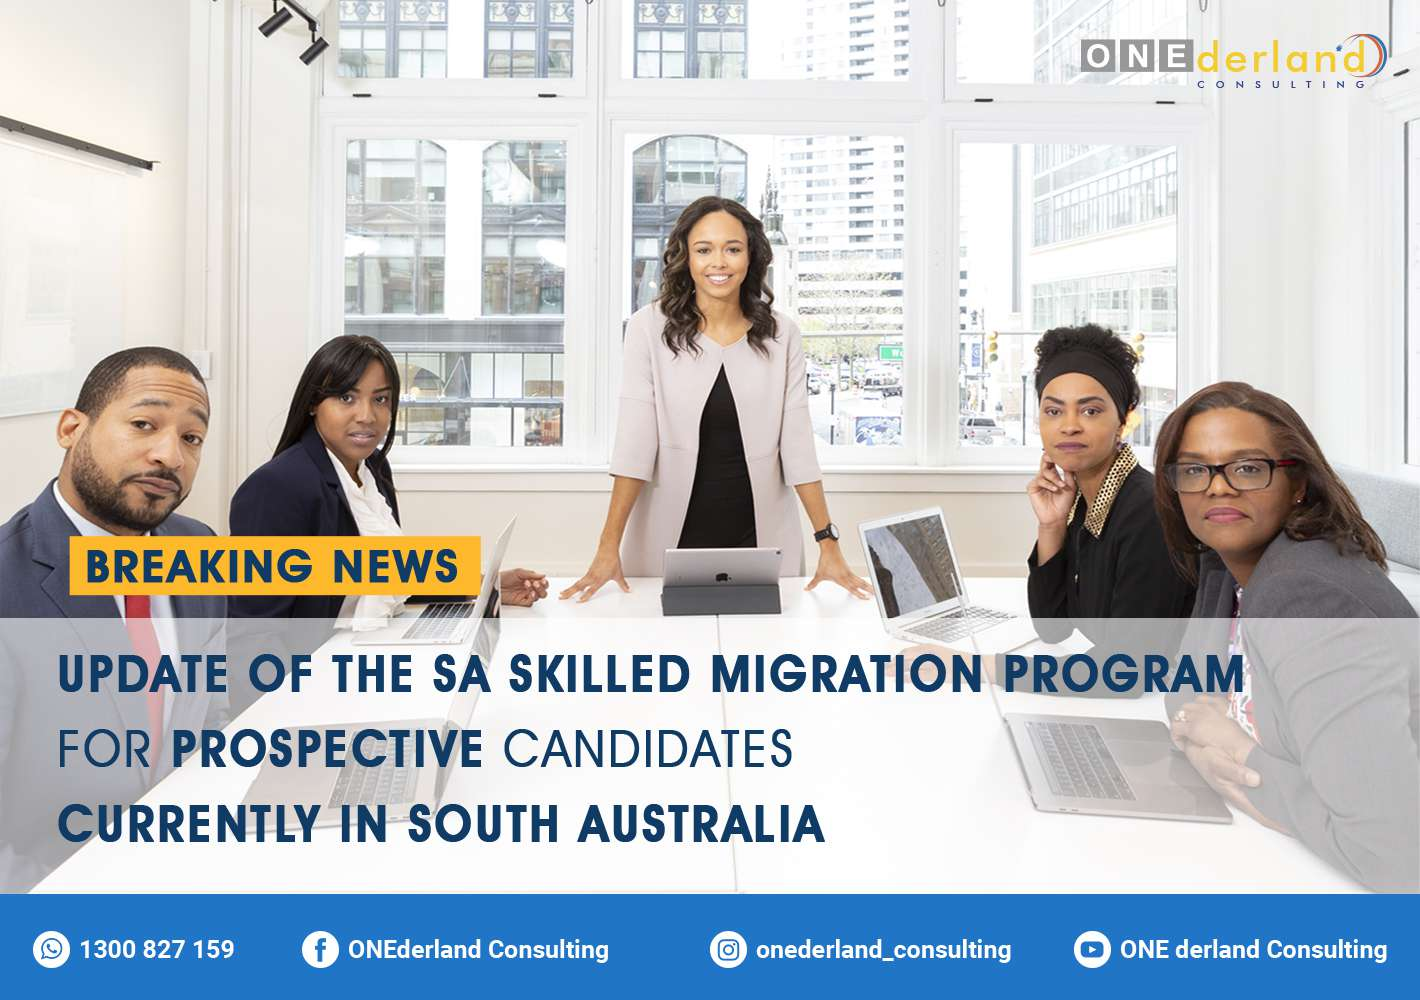 Update of the Skilled Migration Program for Prospective Candidates Currently In South Australia